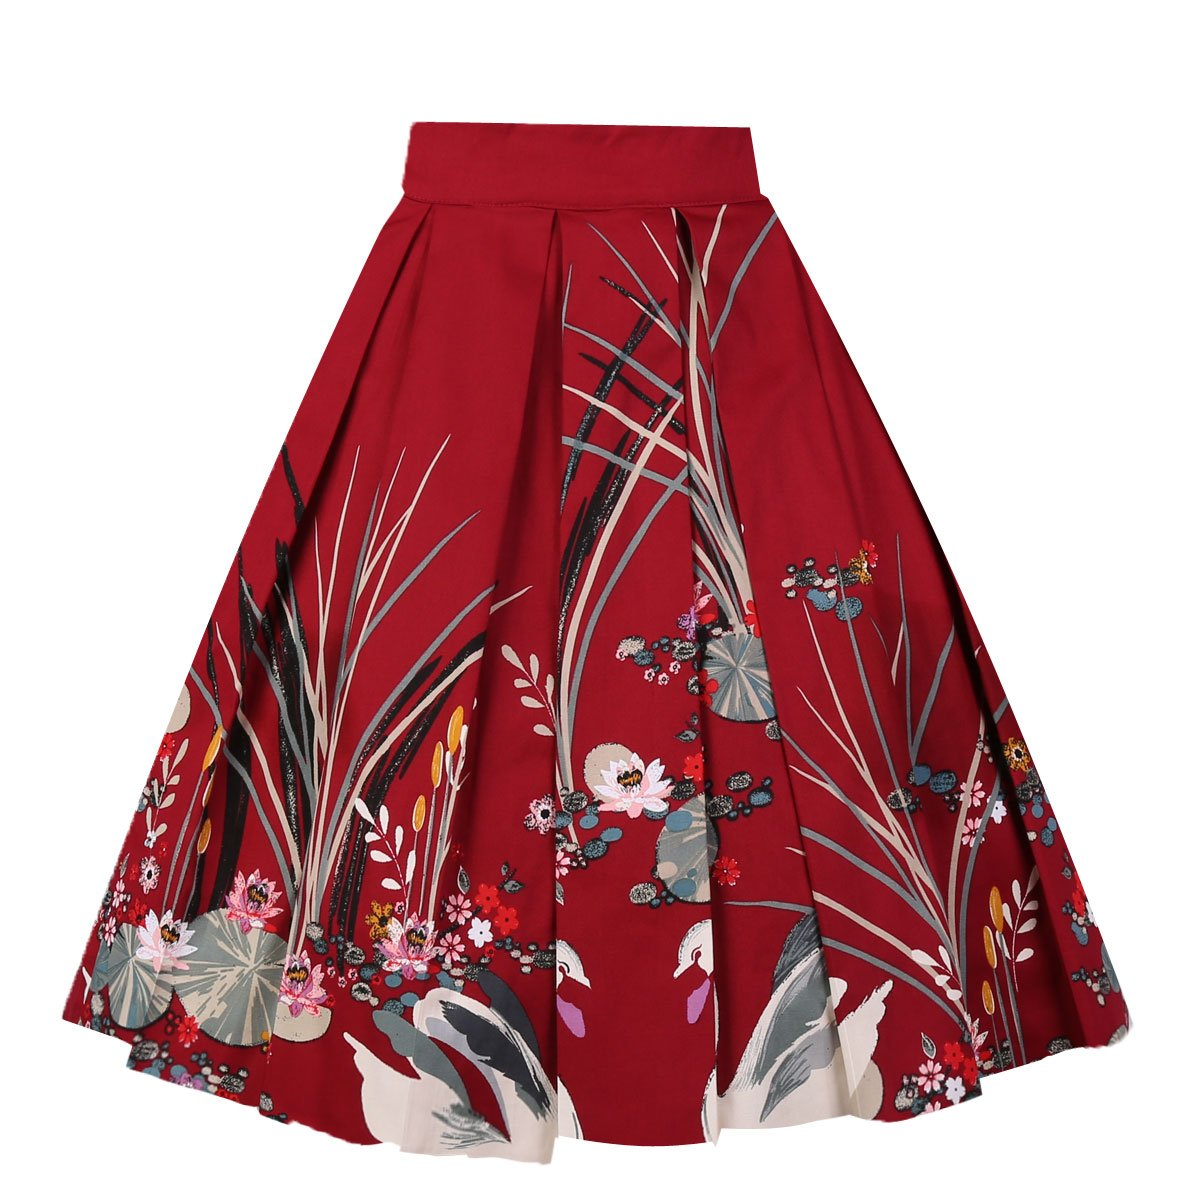 Girstunm Women's Pleated Vintage Skirt Floral Print A-line Midi Skirts with Pockets Red-Swan XL